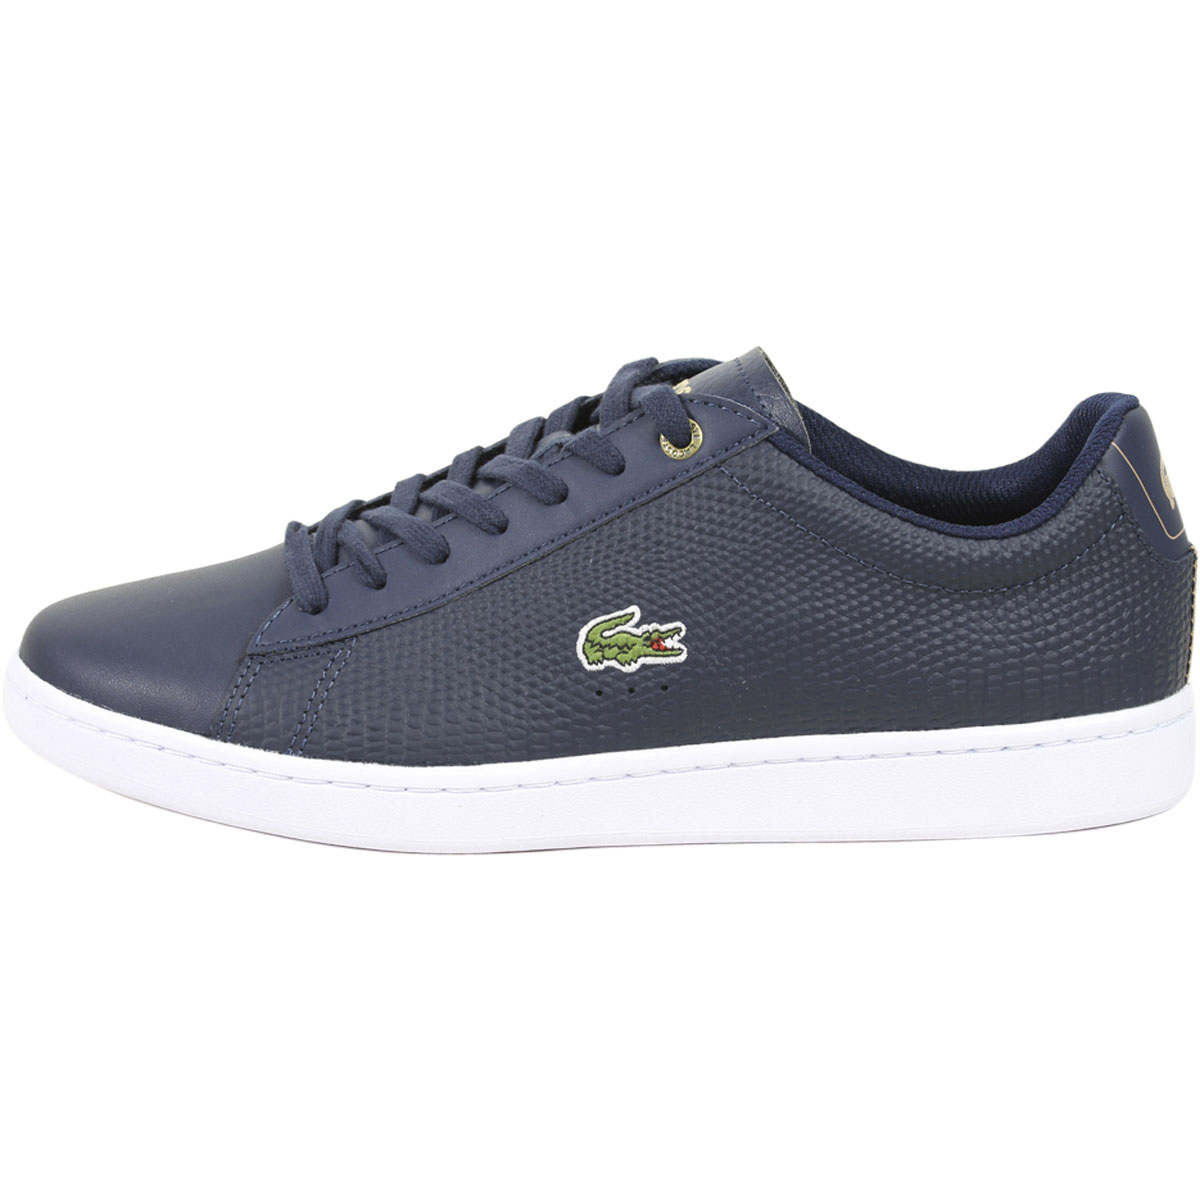 Lacoste-Men-039-s-Carnaby-EVO-118-Trainers-Sneakers-Shoes thumbnail 17